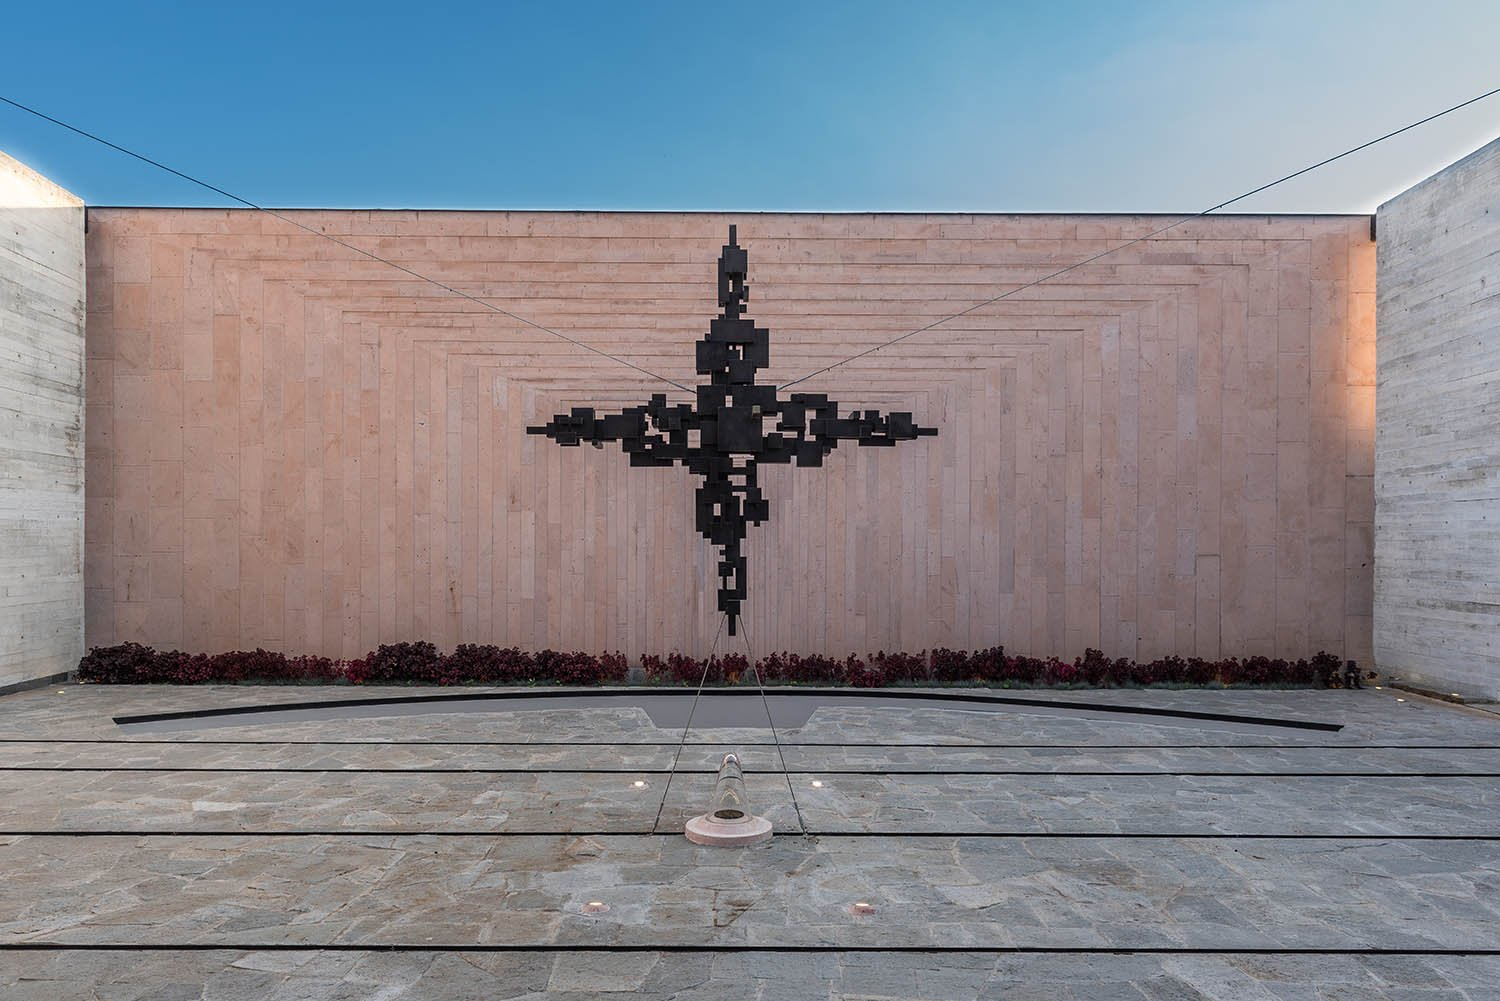 To the bottom, the courtyard holds a suspended steel cross, designed and manufactured in-house Jaime Navarro Soto